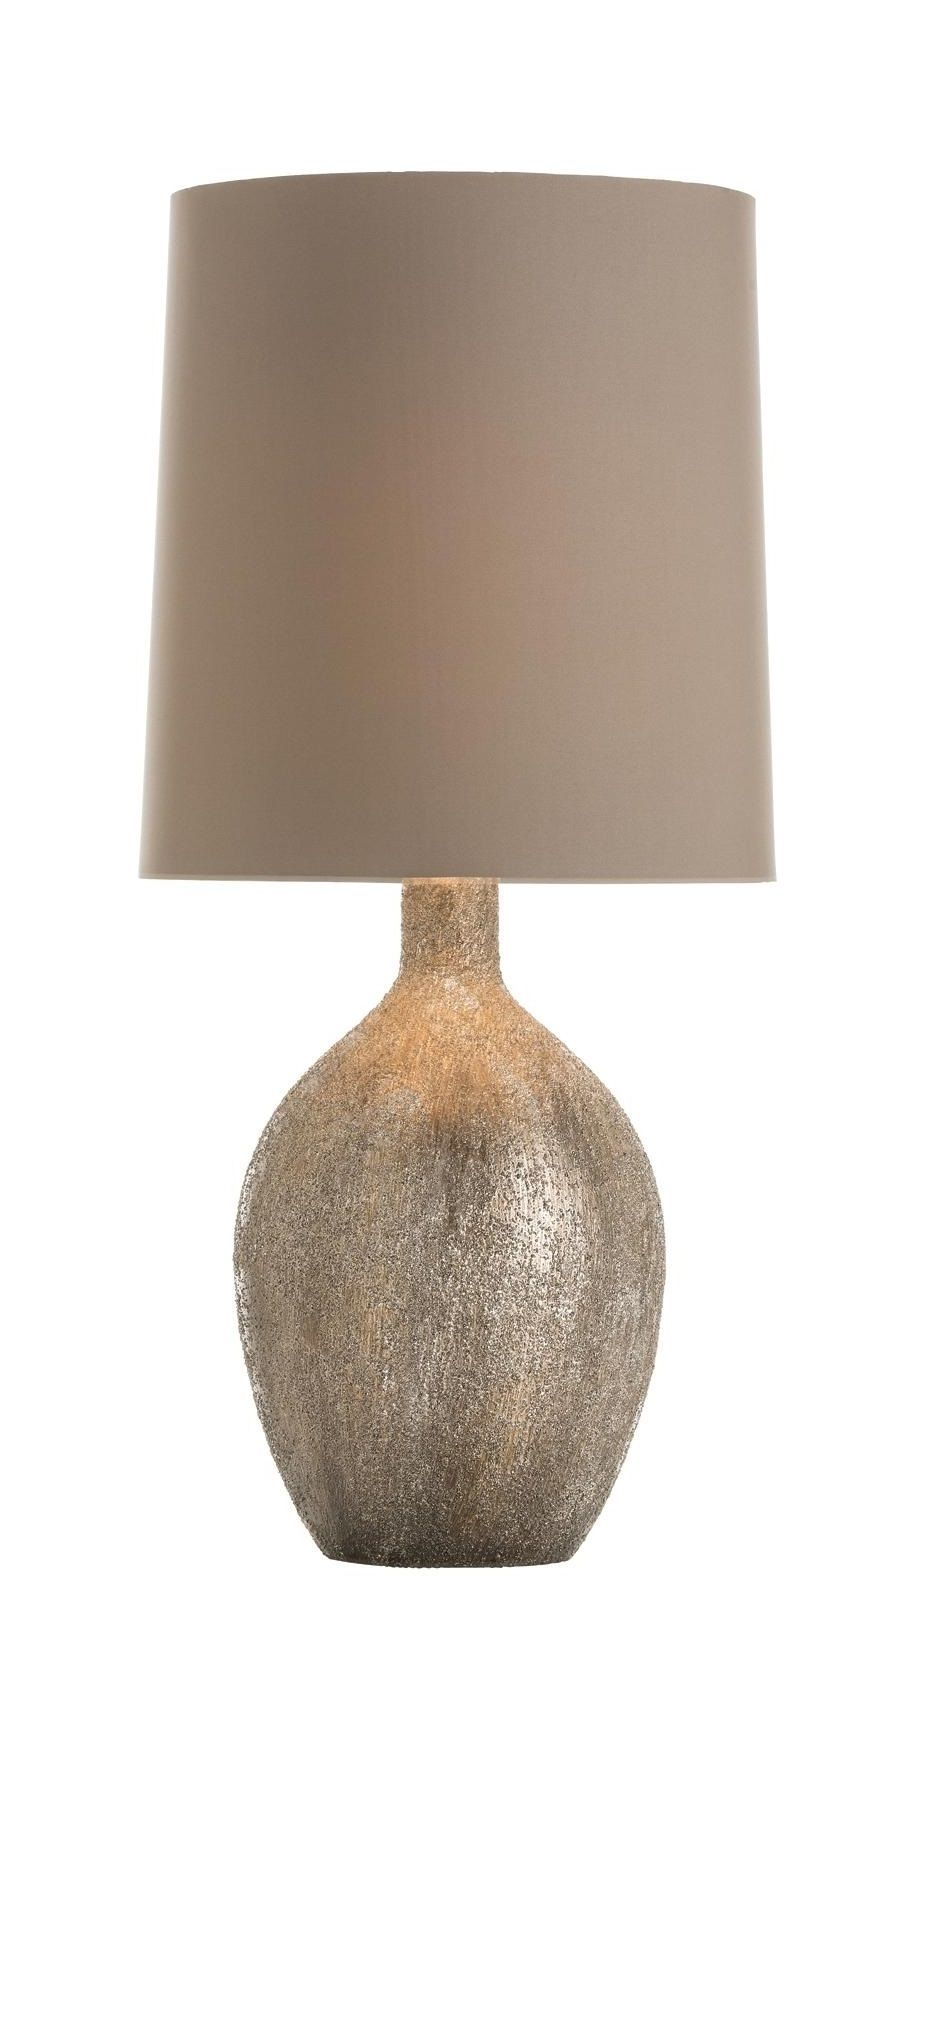 Charmant InStyle Decor.com Taupe Table Lamps, Modern Taupe Table Lamps, Contemporaryu2026